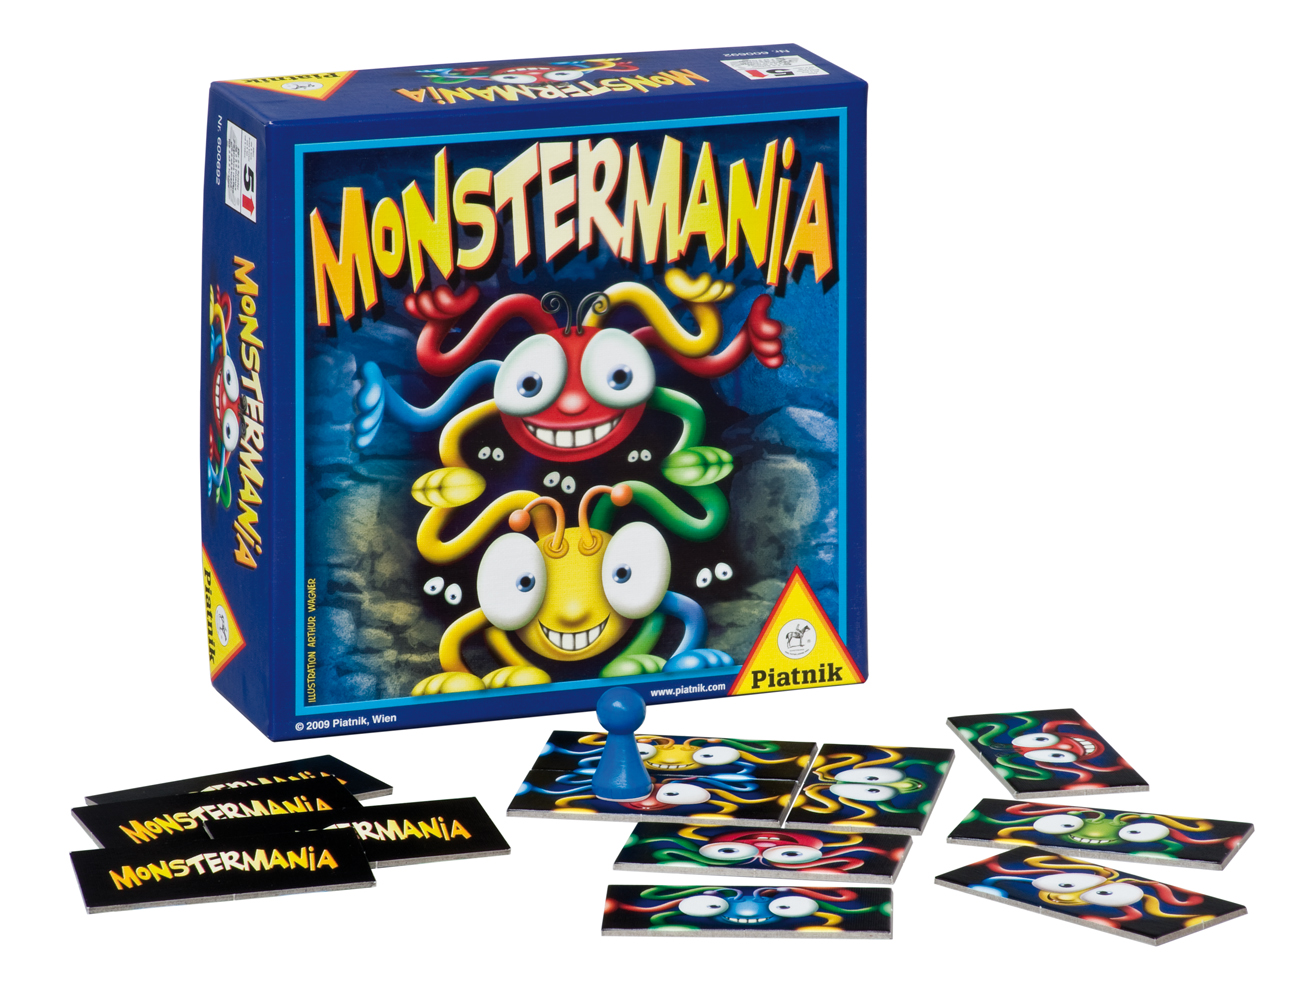 Piatnik Monstermania